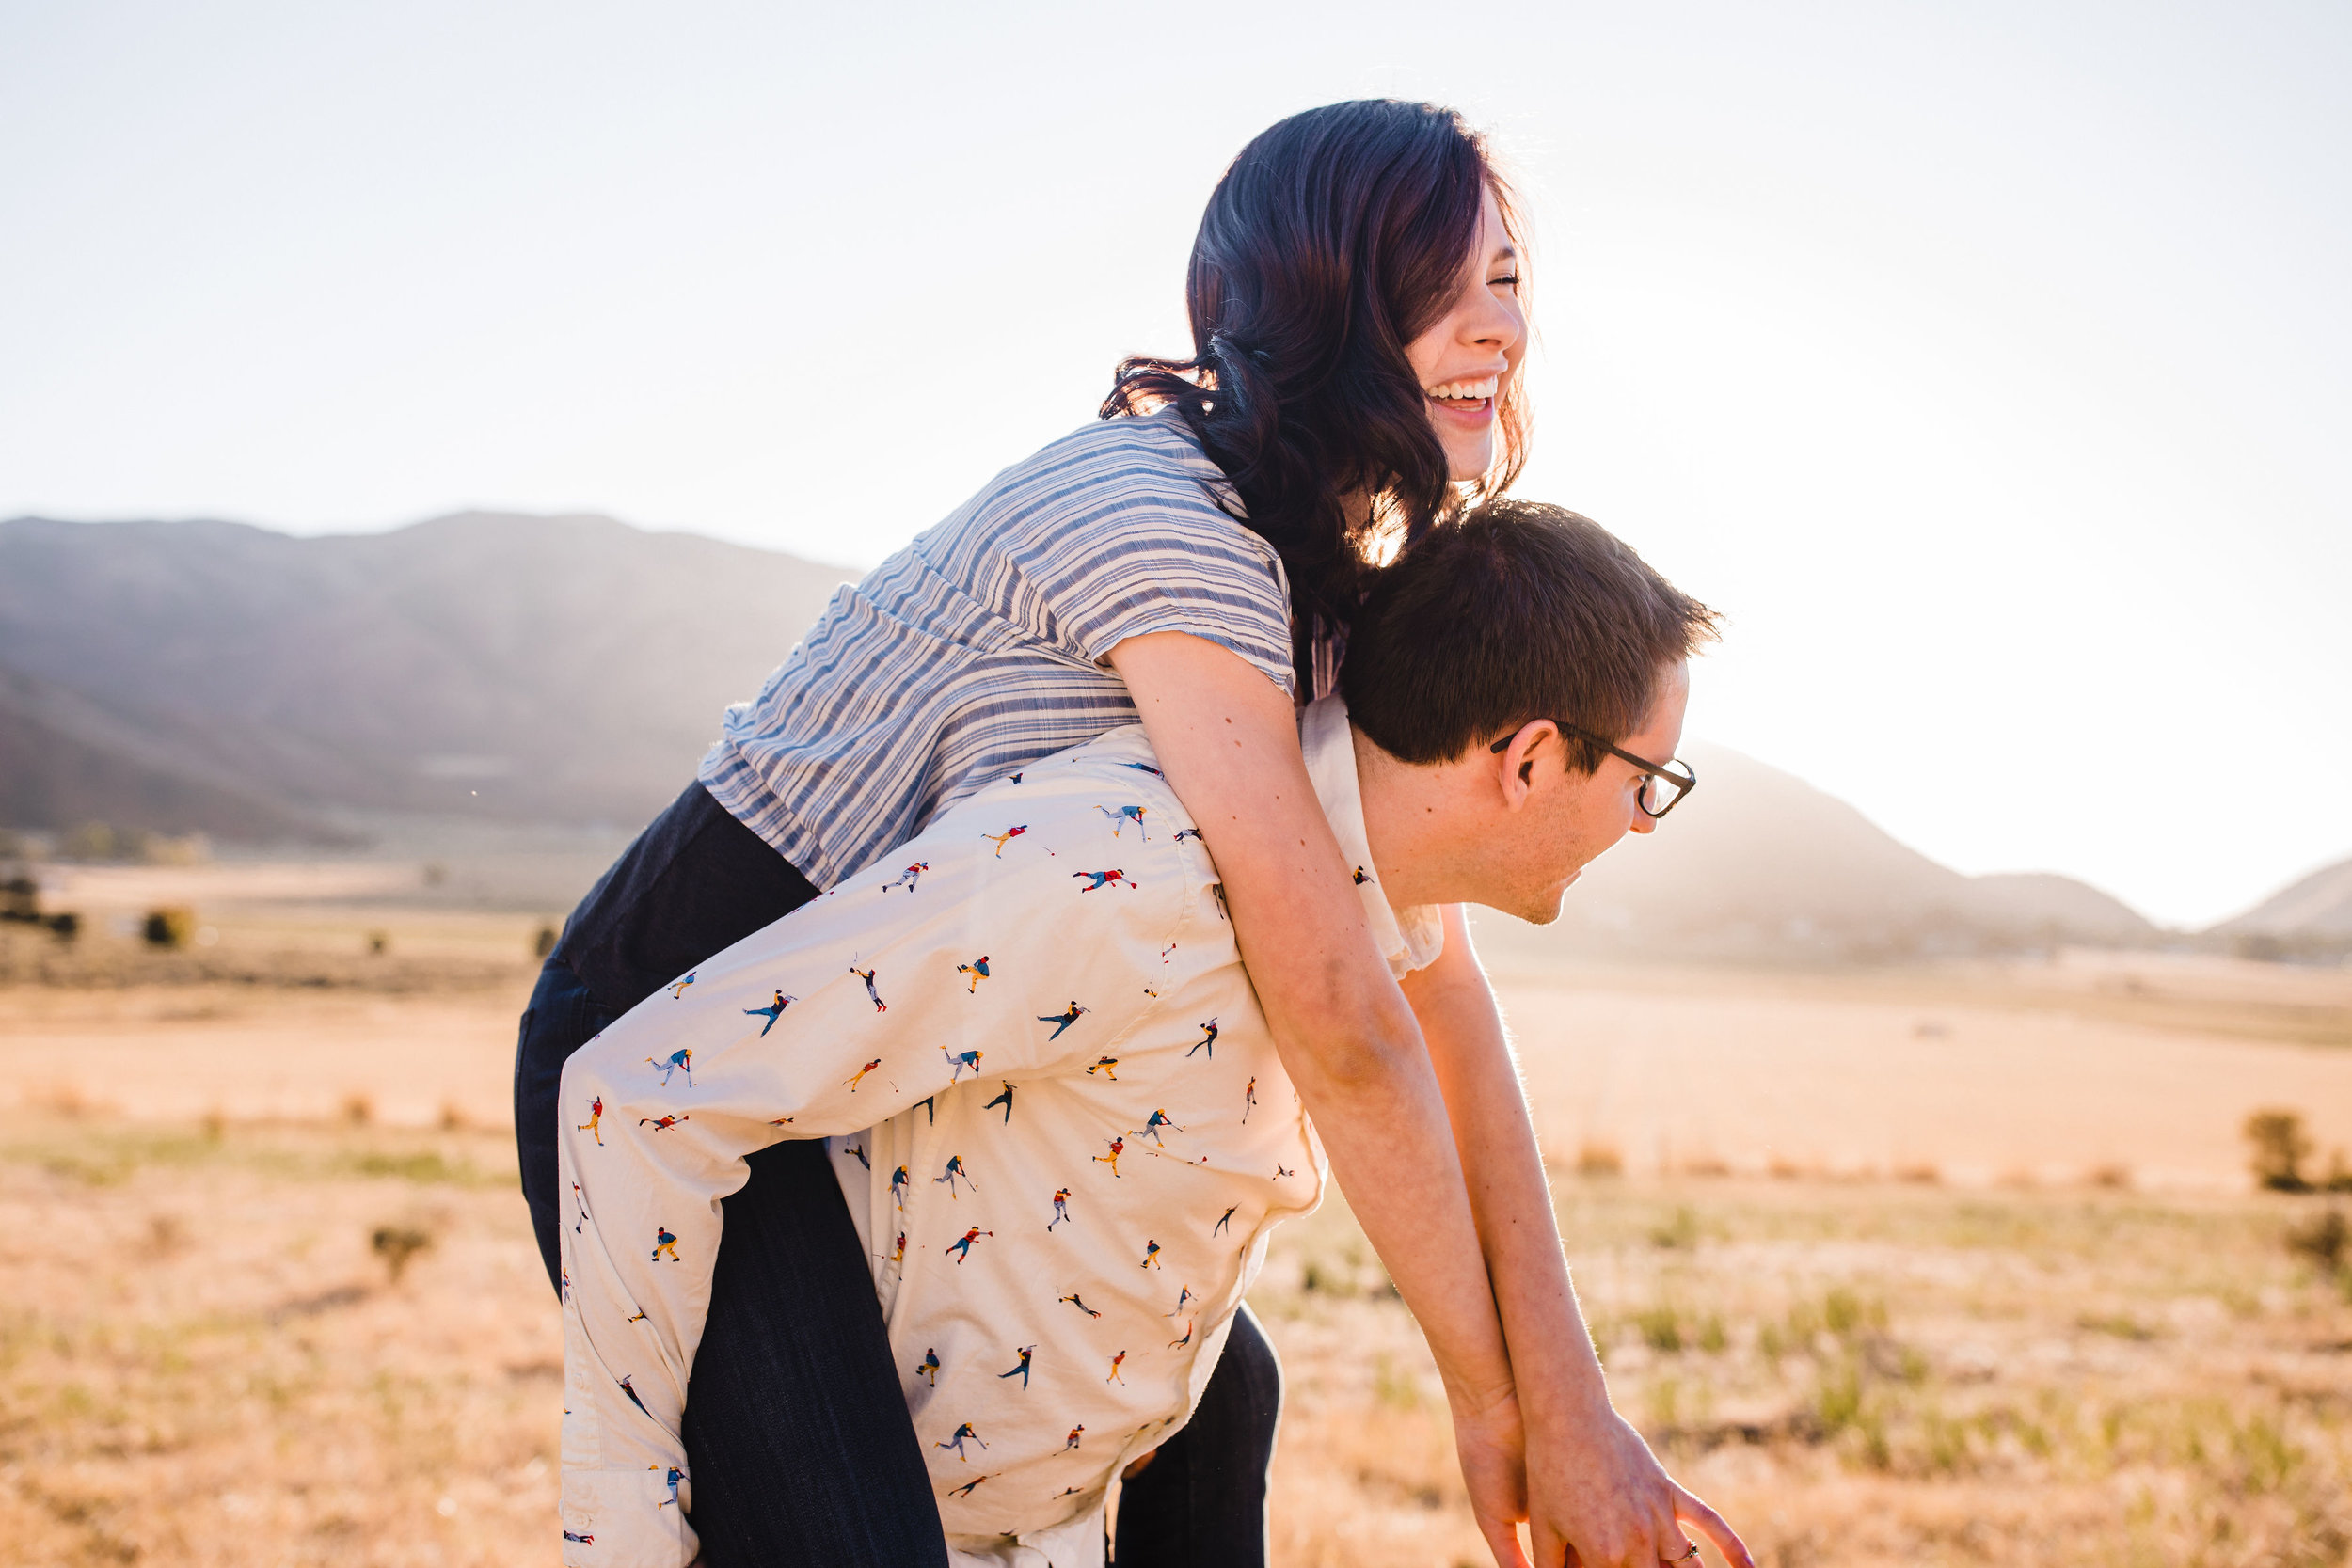 logan utah engagement photographer piggy back laughing playful mountains field